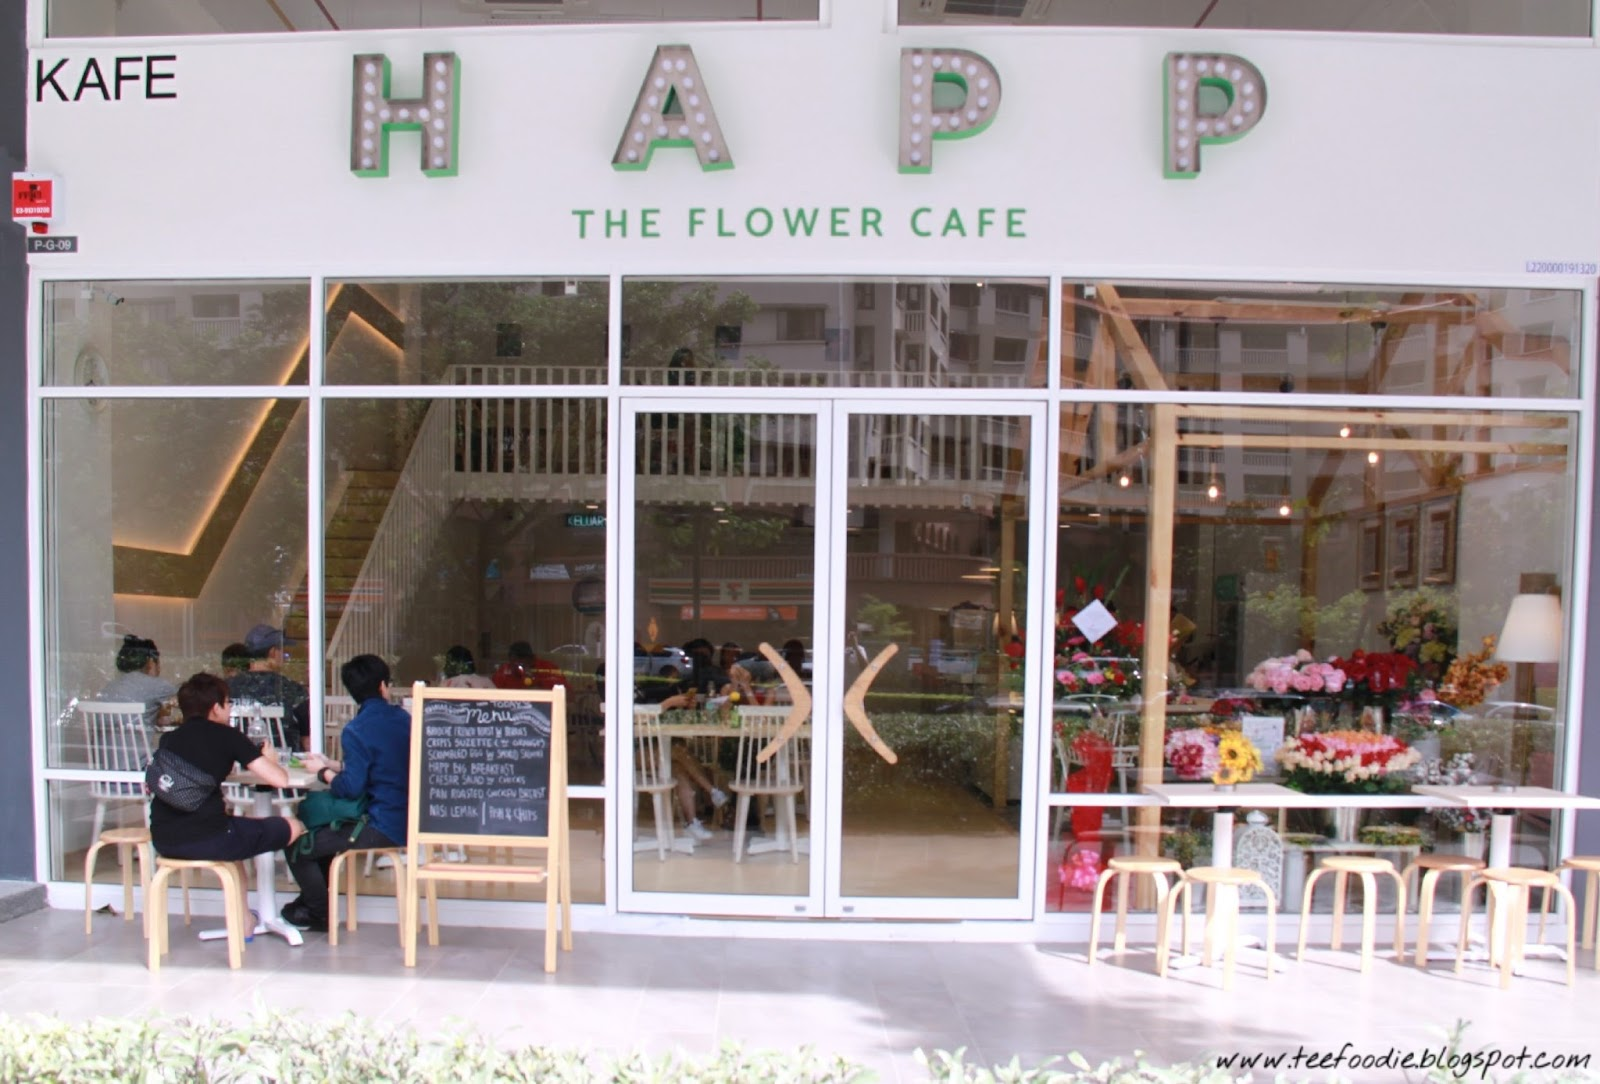 happ cafe @ tropicana avenue - tee foodie